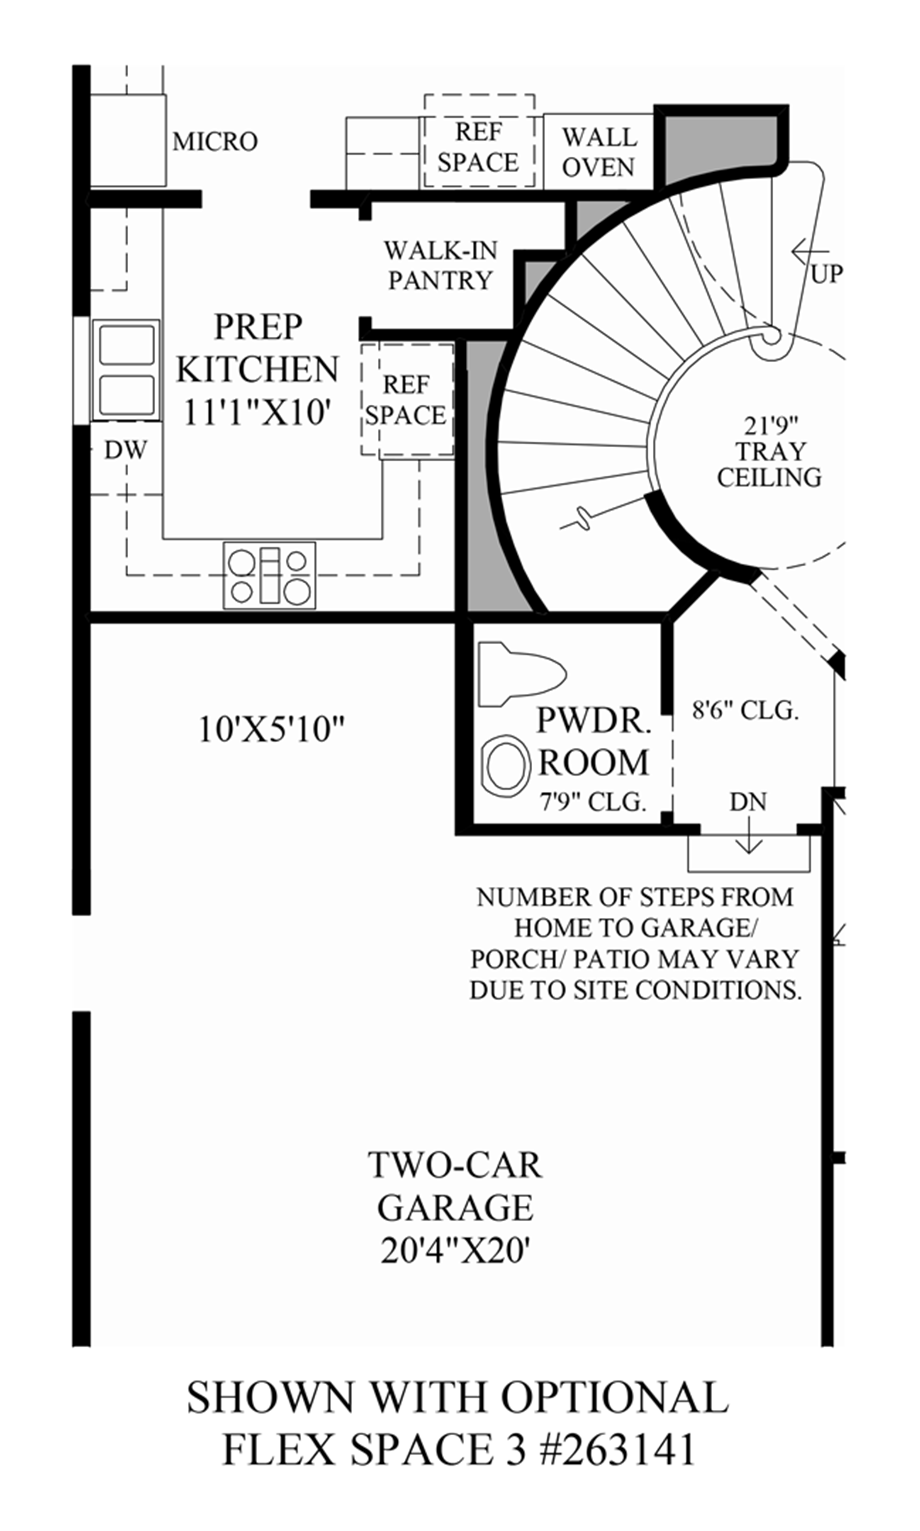 Optional Flex Space 3 Floor Plan